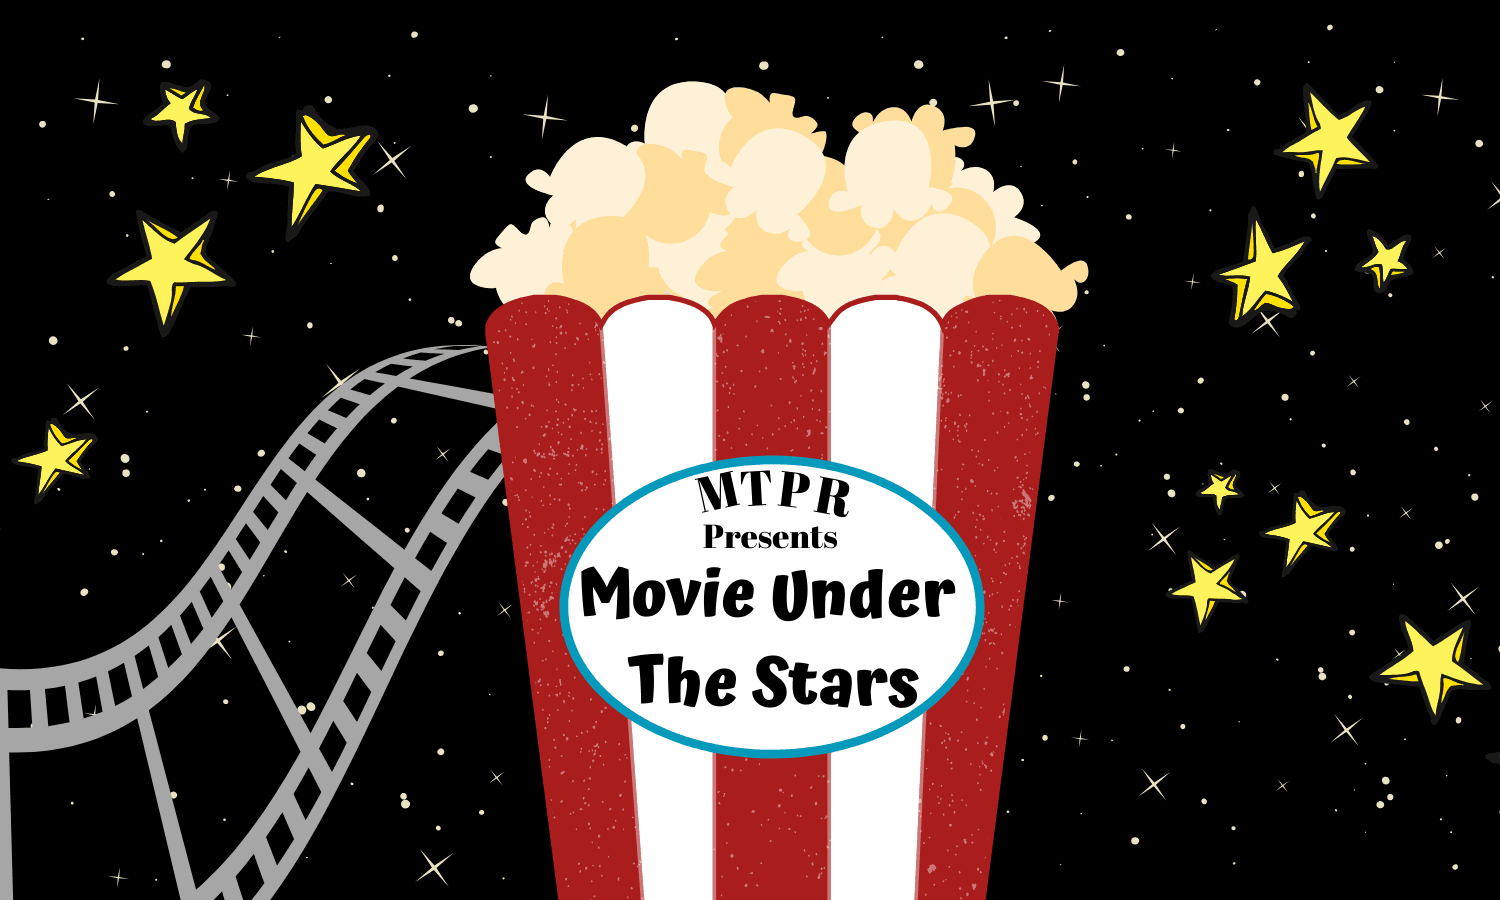 movie-under-the-stars